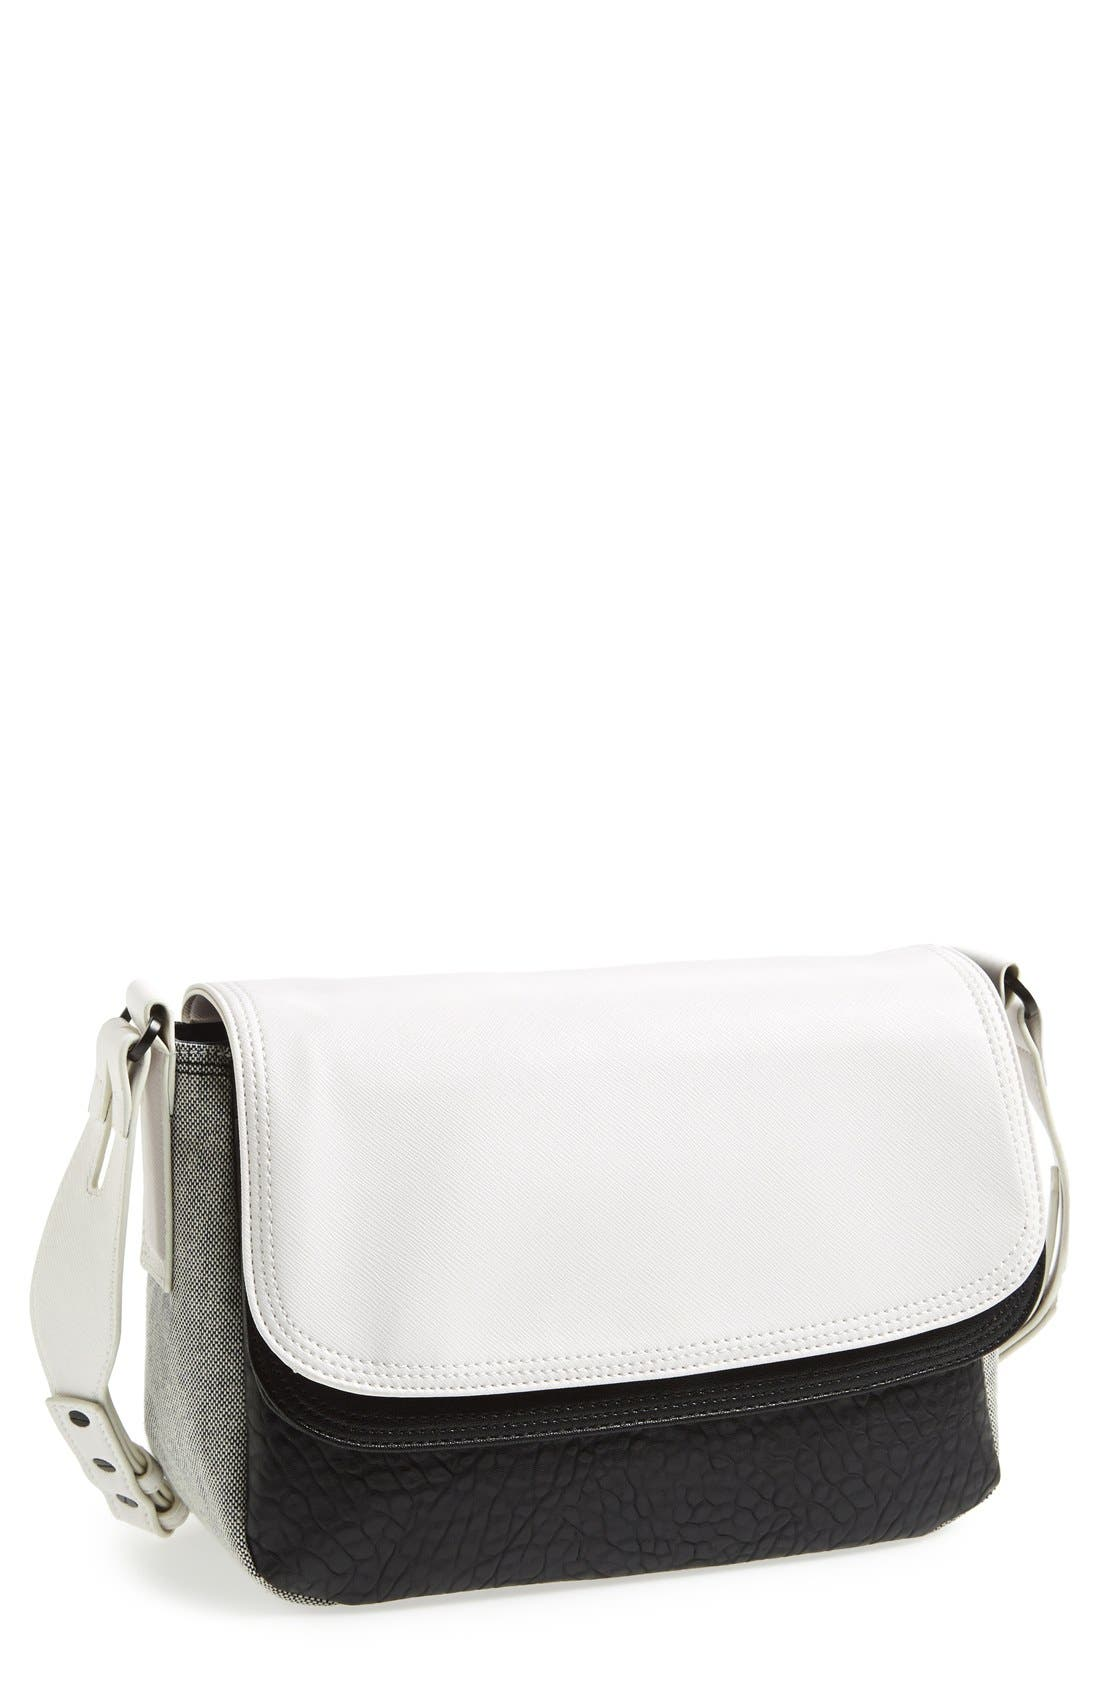 Alternate Image 1 Selected - French Connection Faux Leather Crossbody Bag